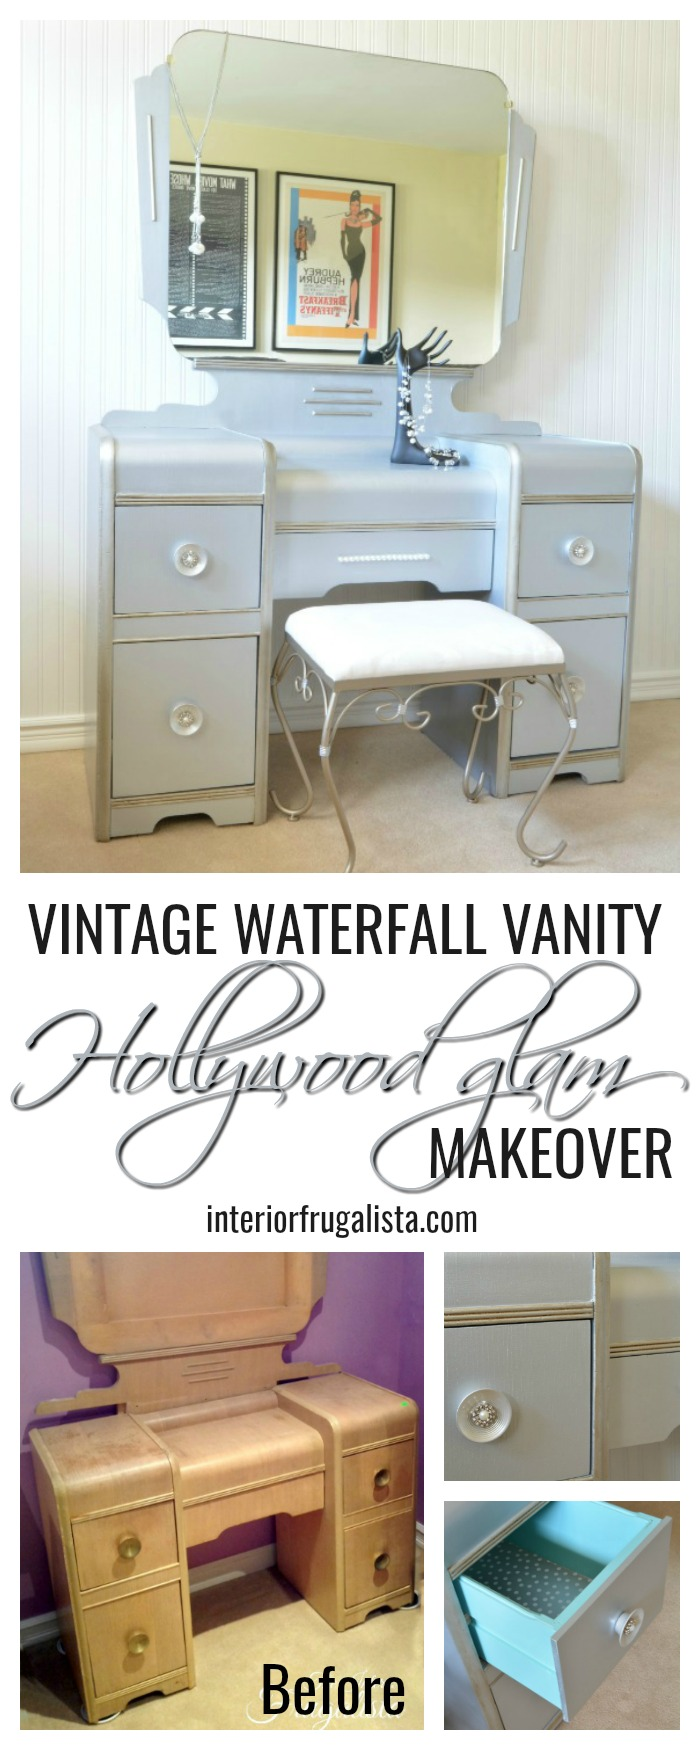 How to give a vintage waterfall vanity a drab to fab hollywood glam makeover with metallic paint, wrapping paper, and pearl embellished knobs. #vintagevanity #artdecovanity #waterfallvanity #hollywoodglamvanity